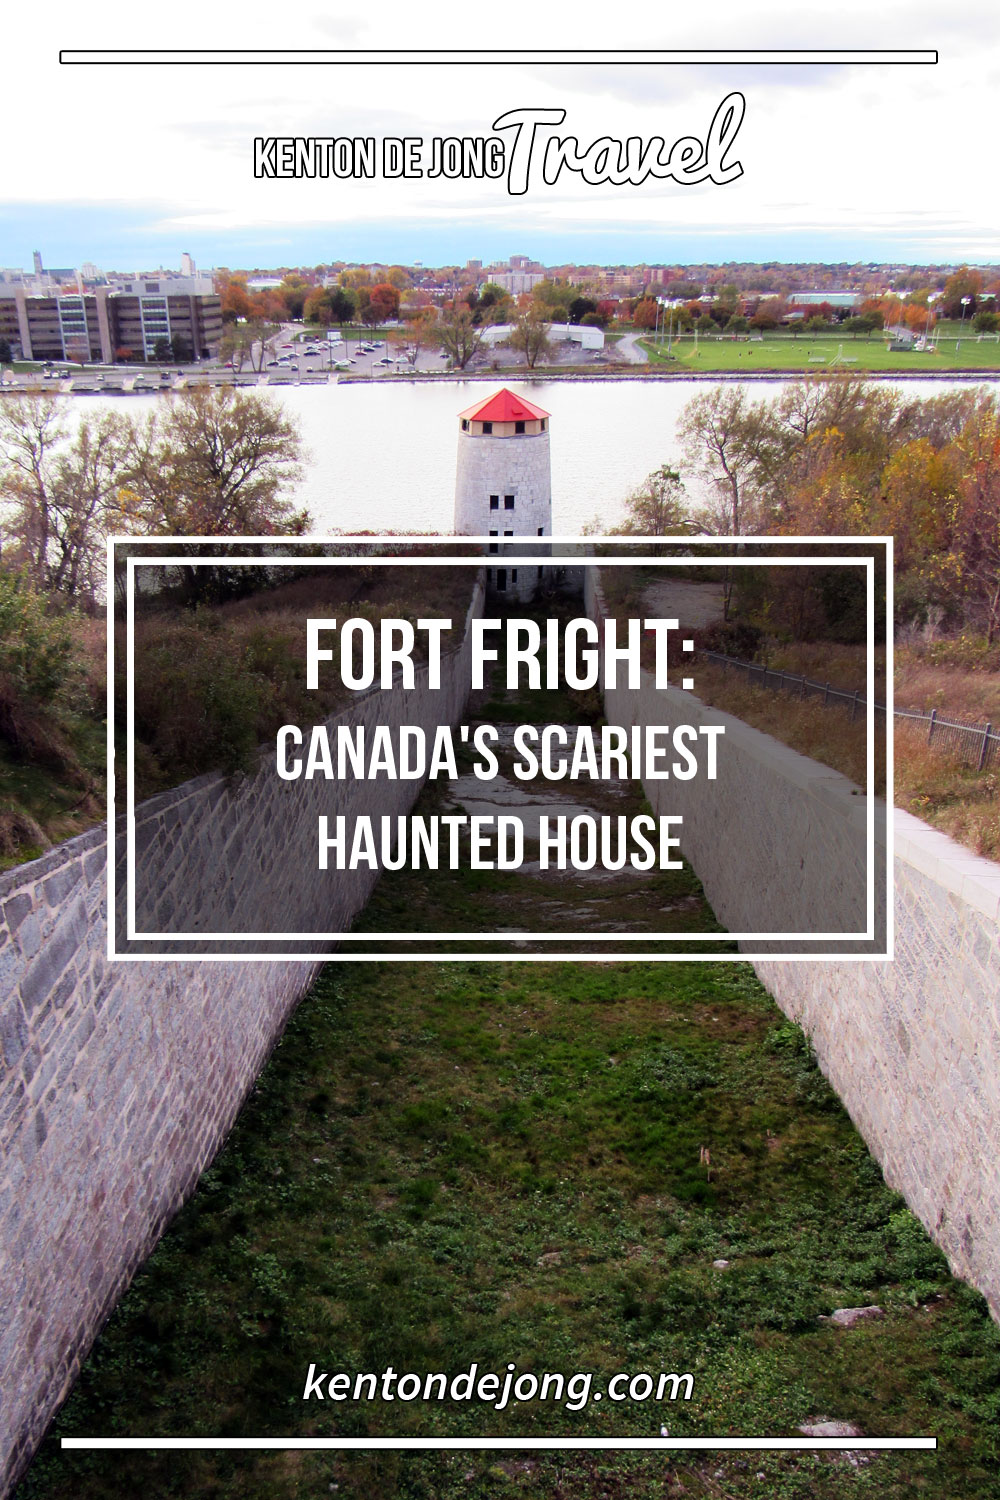 Fort Fright: Canada's Scariest Haunted House